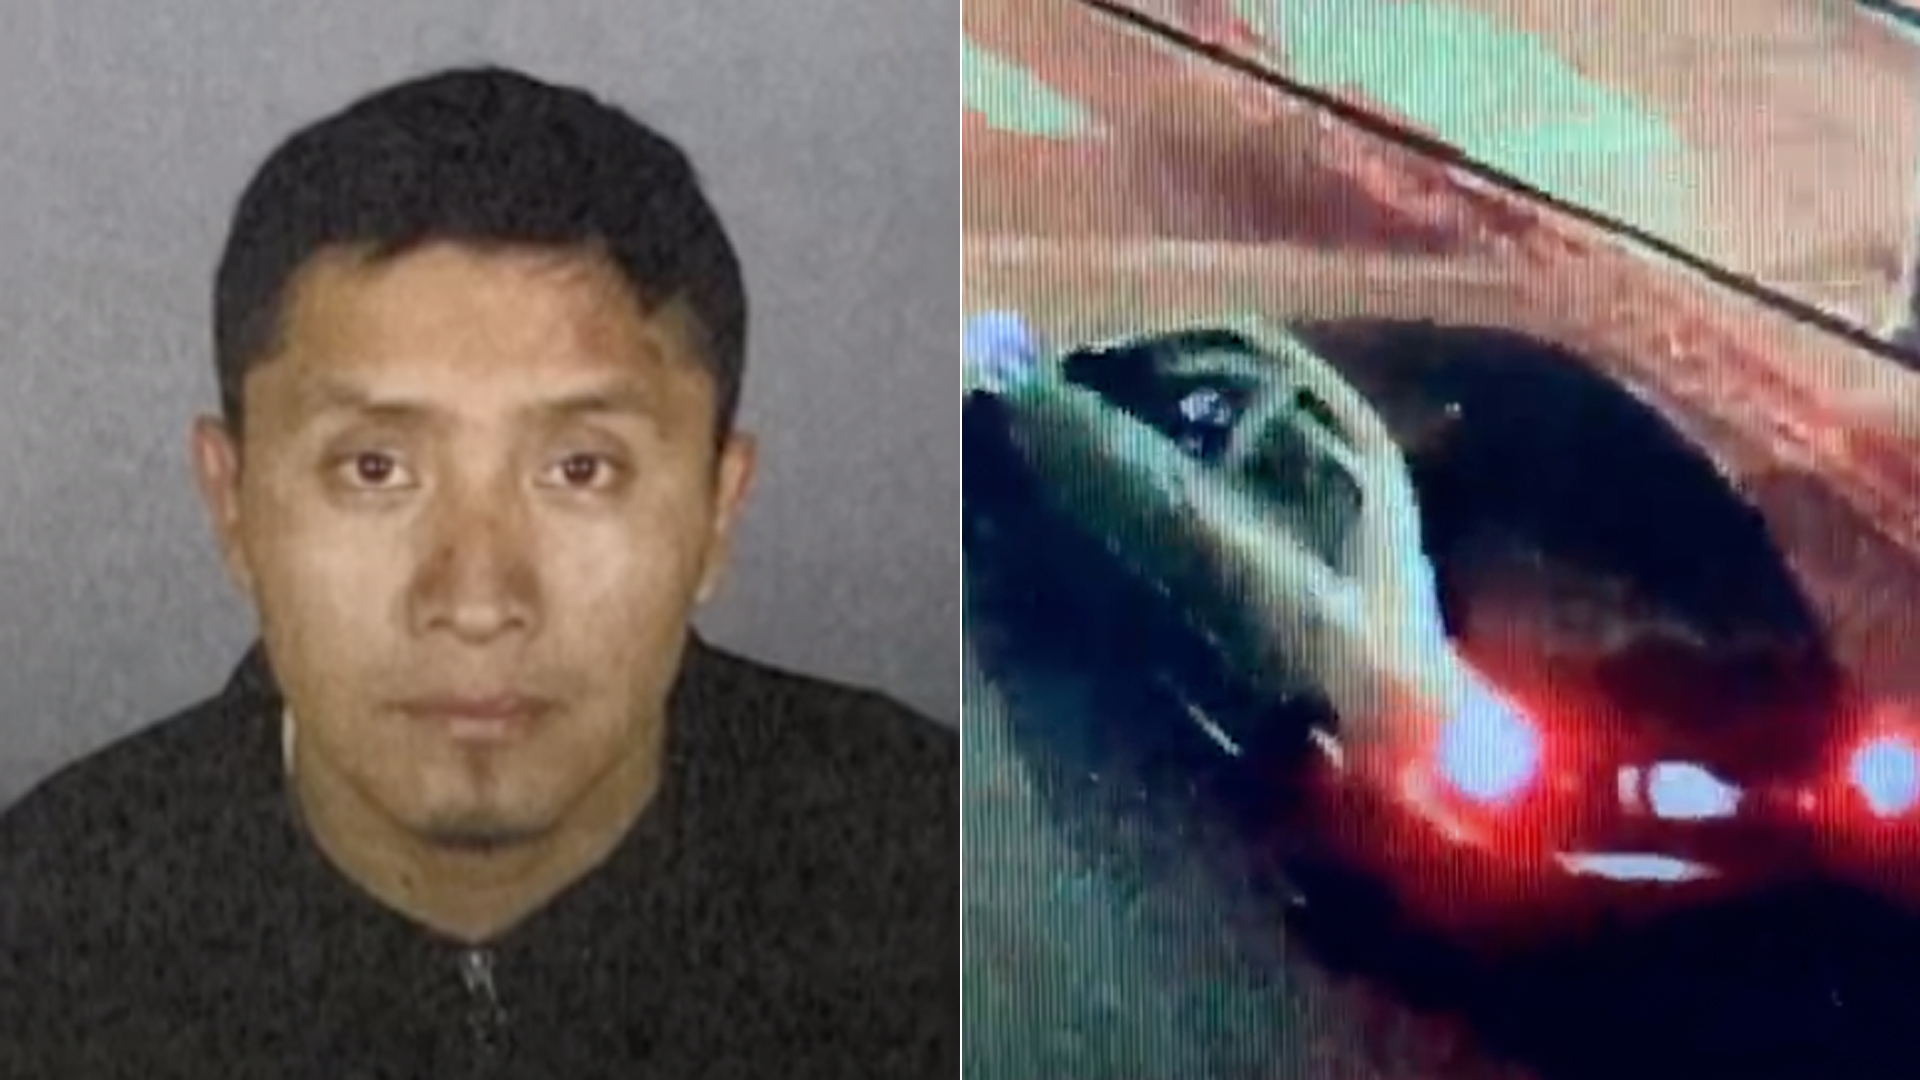 Ronald Waldamar Jo-Jlux is shown in a photo released by the Los Angeles Police Department on Dec. 3, 2020. At right is a photo of the suspect vehicle involved in the Westlake hit-and-run crash.